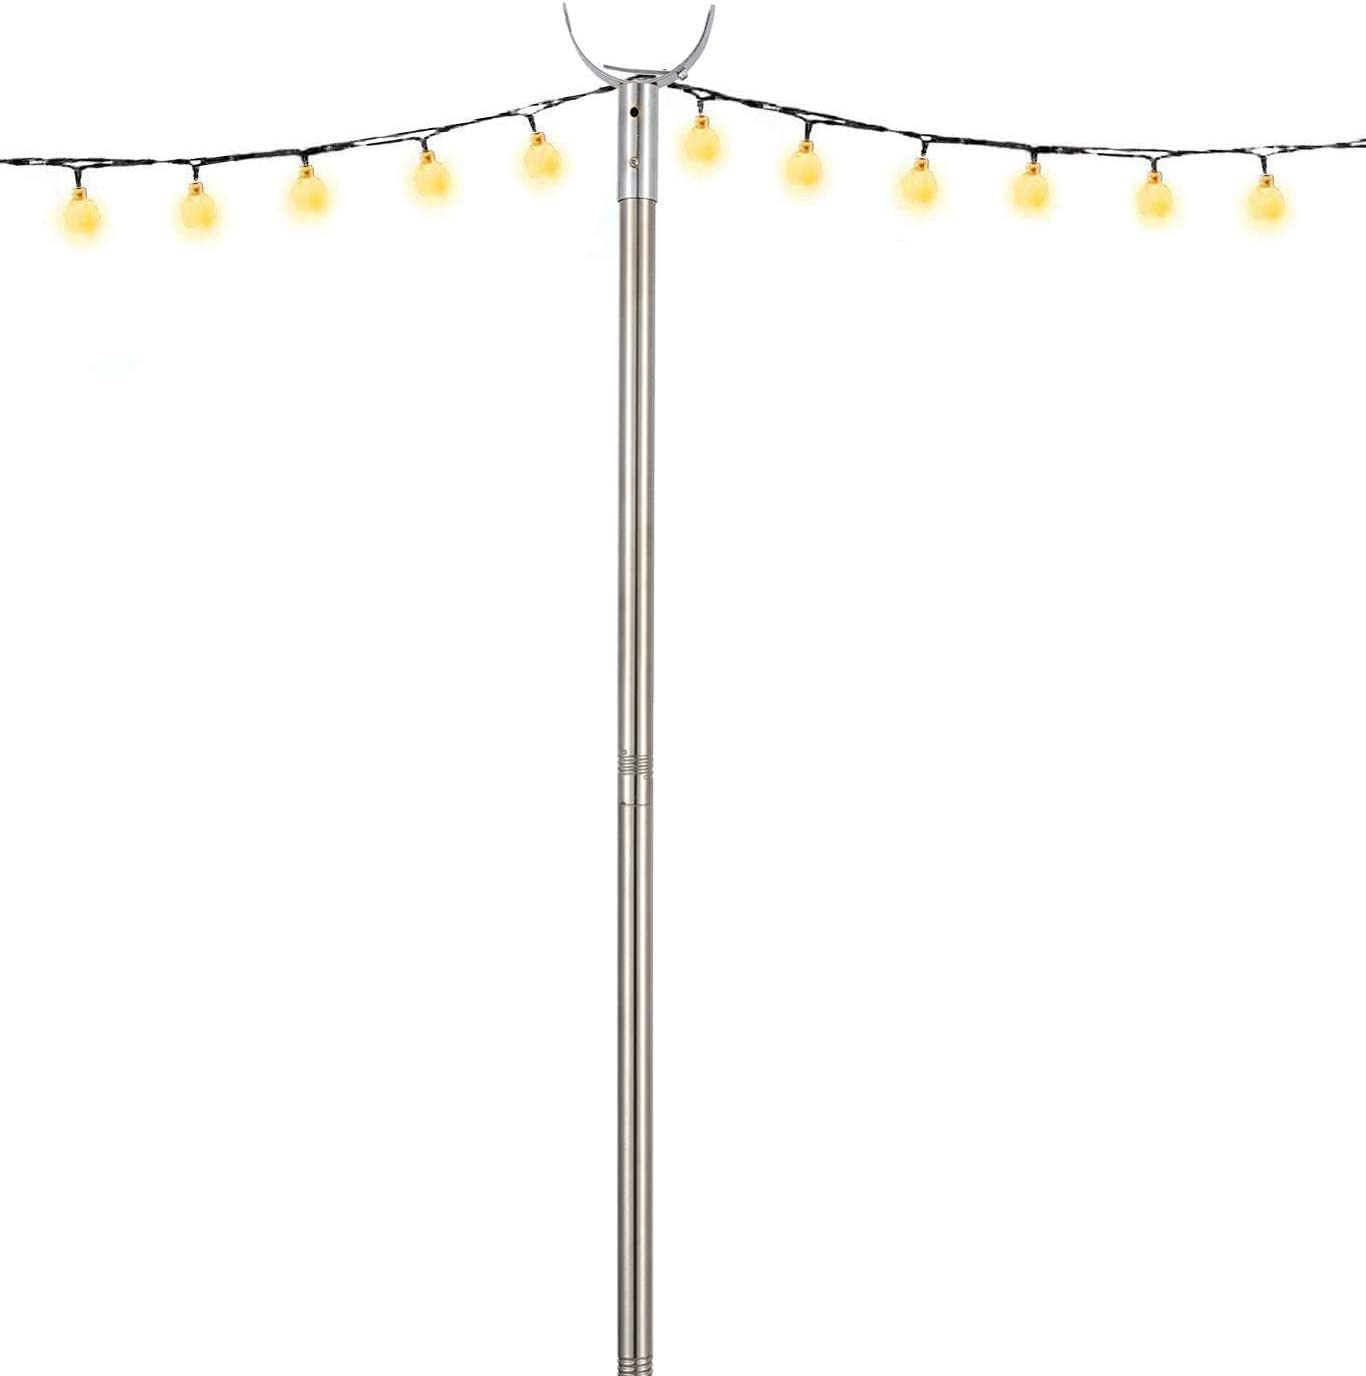 COCONUT Outdoor Light Poles for Lightweight String Lights, 9 FT Stainless Steel Anti-Rust Stand Holder LED Solar Hanging Bulbs for Patio, Backyard, Garden